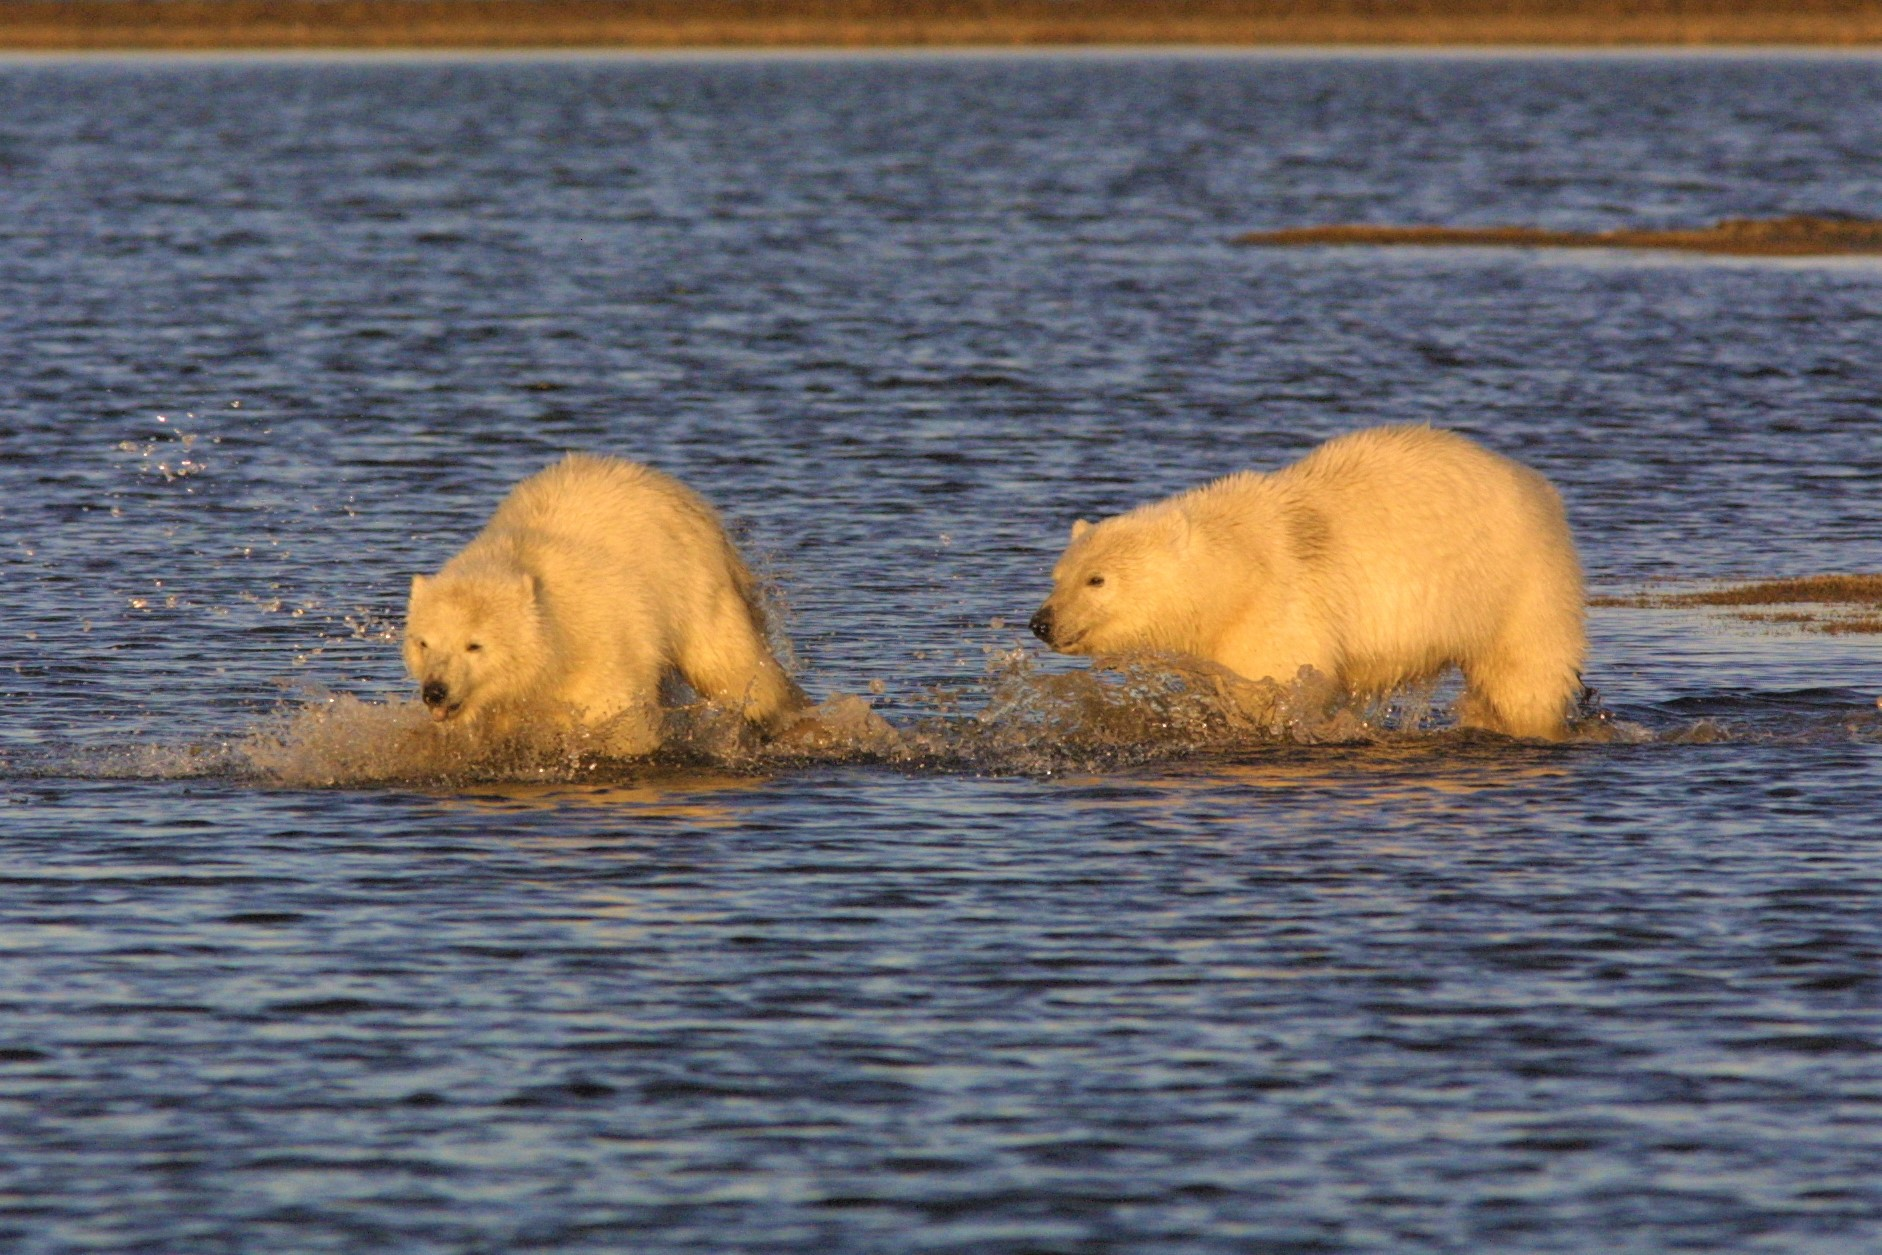 Two polar bear cubs splash through shallow water.